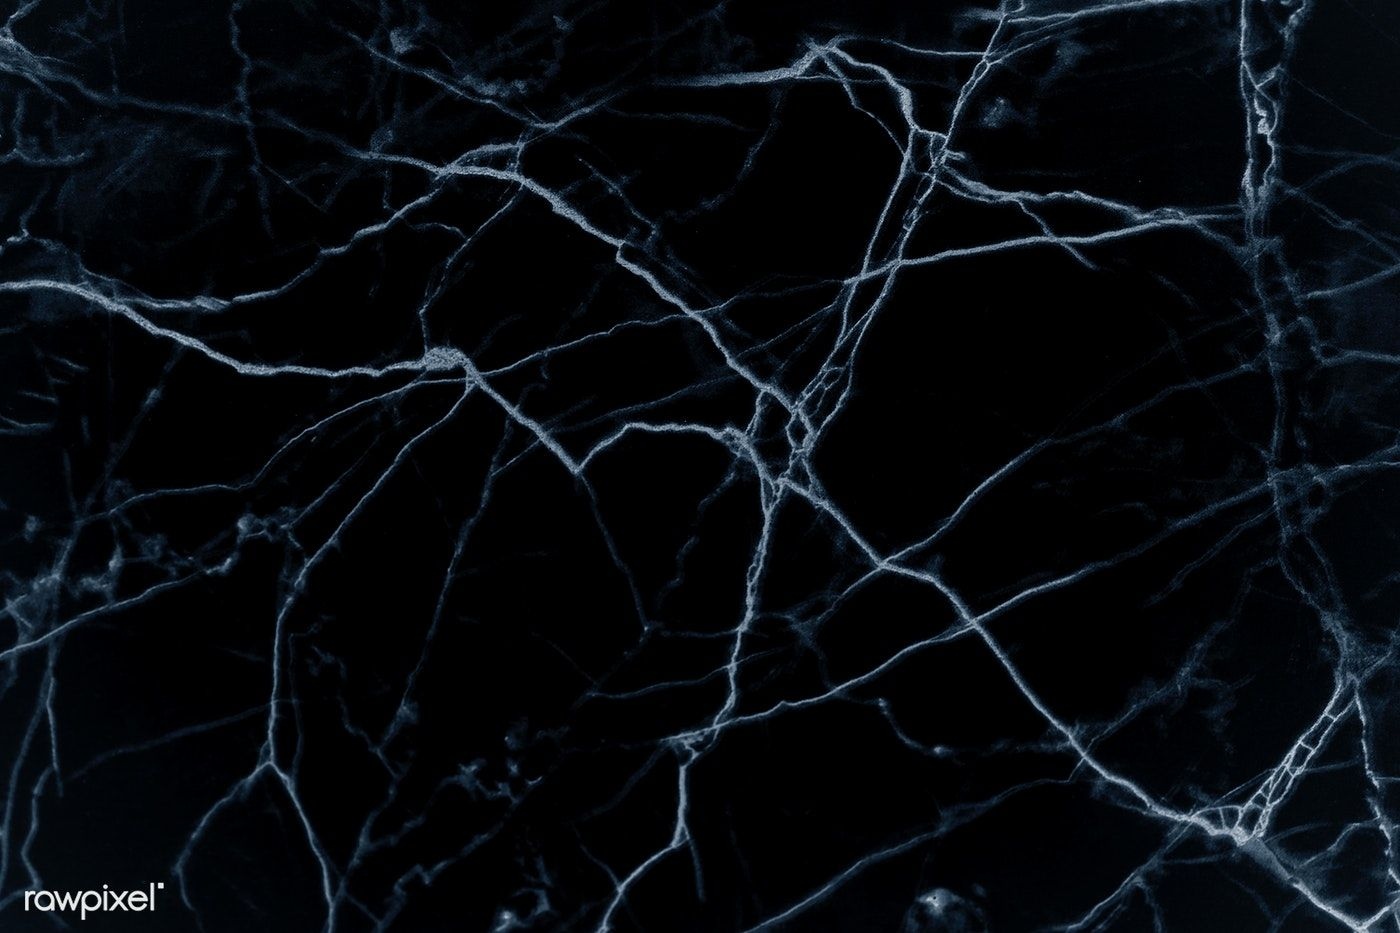 Close Up Of A Black Marble Background Free Image By Rawpixel Com Black Marble Background Marble Background Black Marble